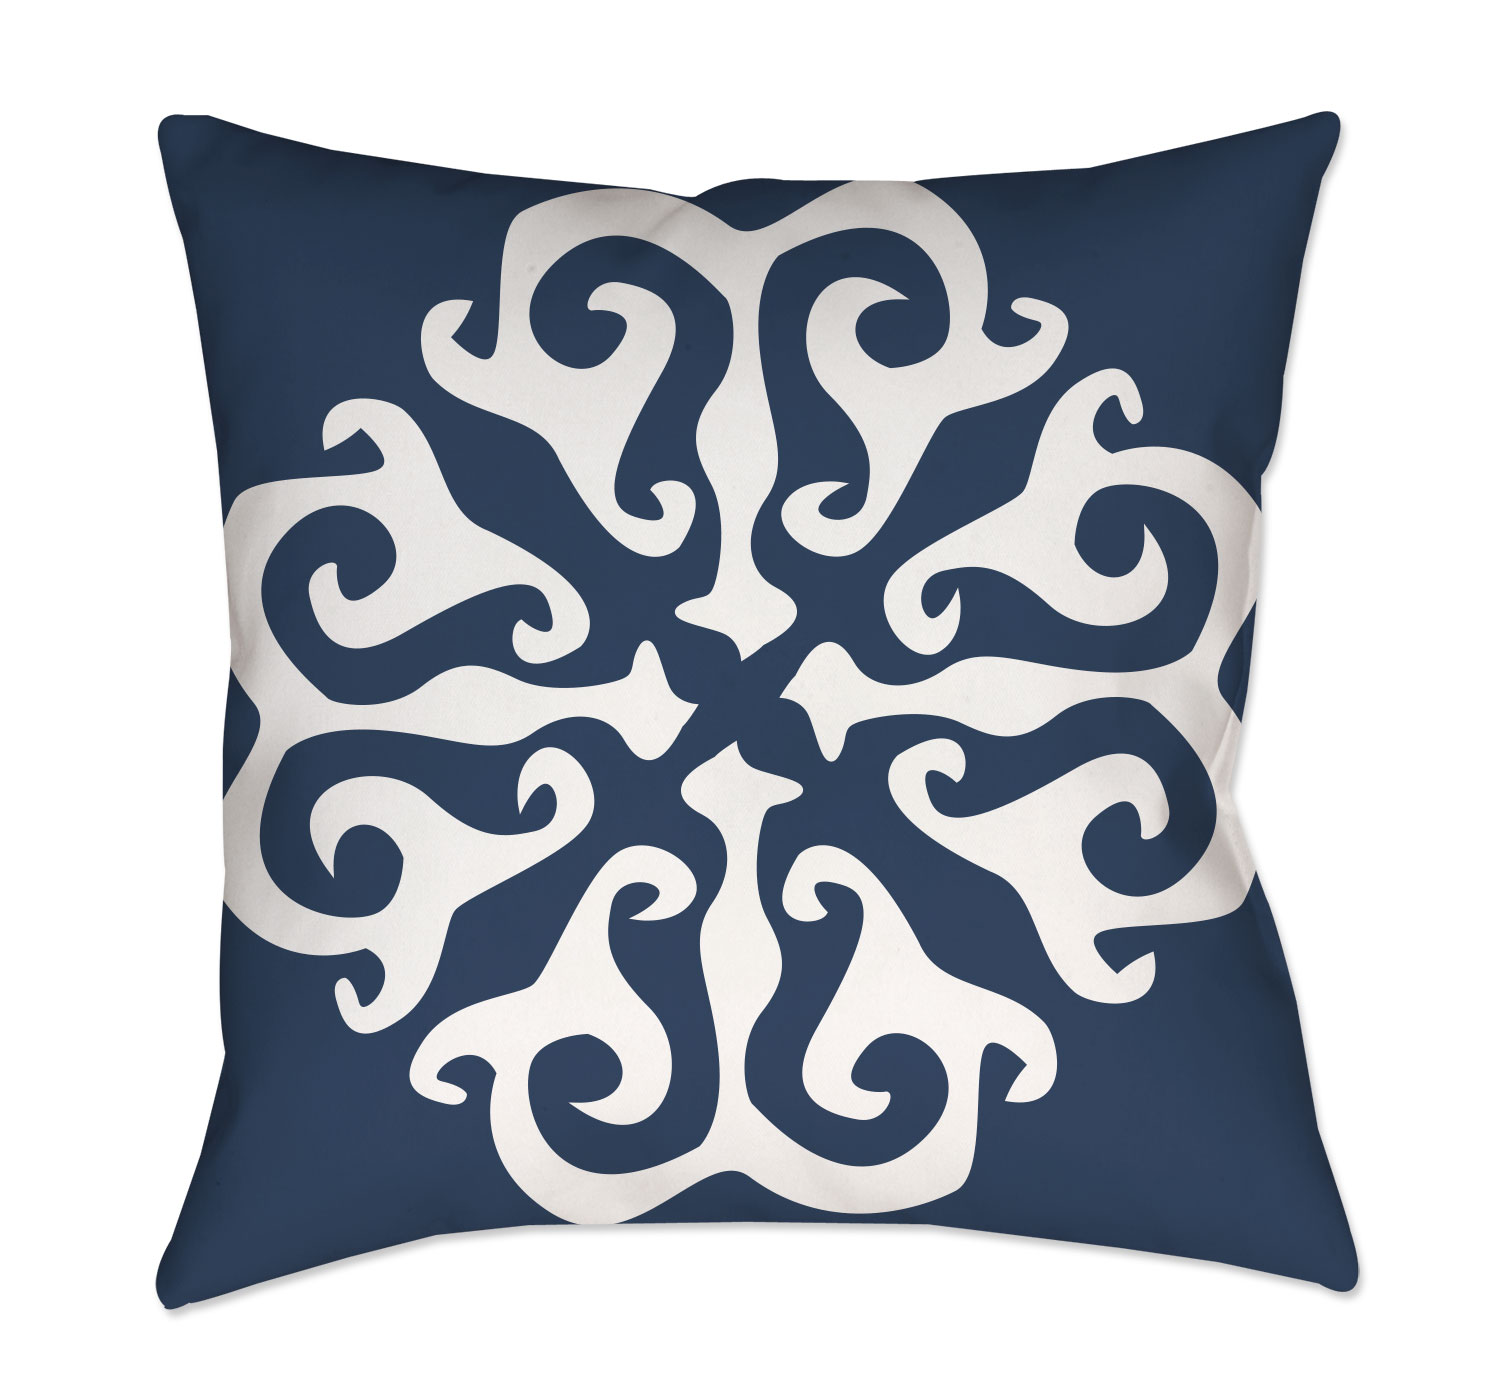 plus blue pillows x size outdoors throw detail large for dk comely fringe decorative then damask to navy with also nordstrom glancing rizzy pillow s posh of along accent